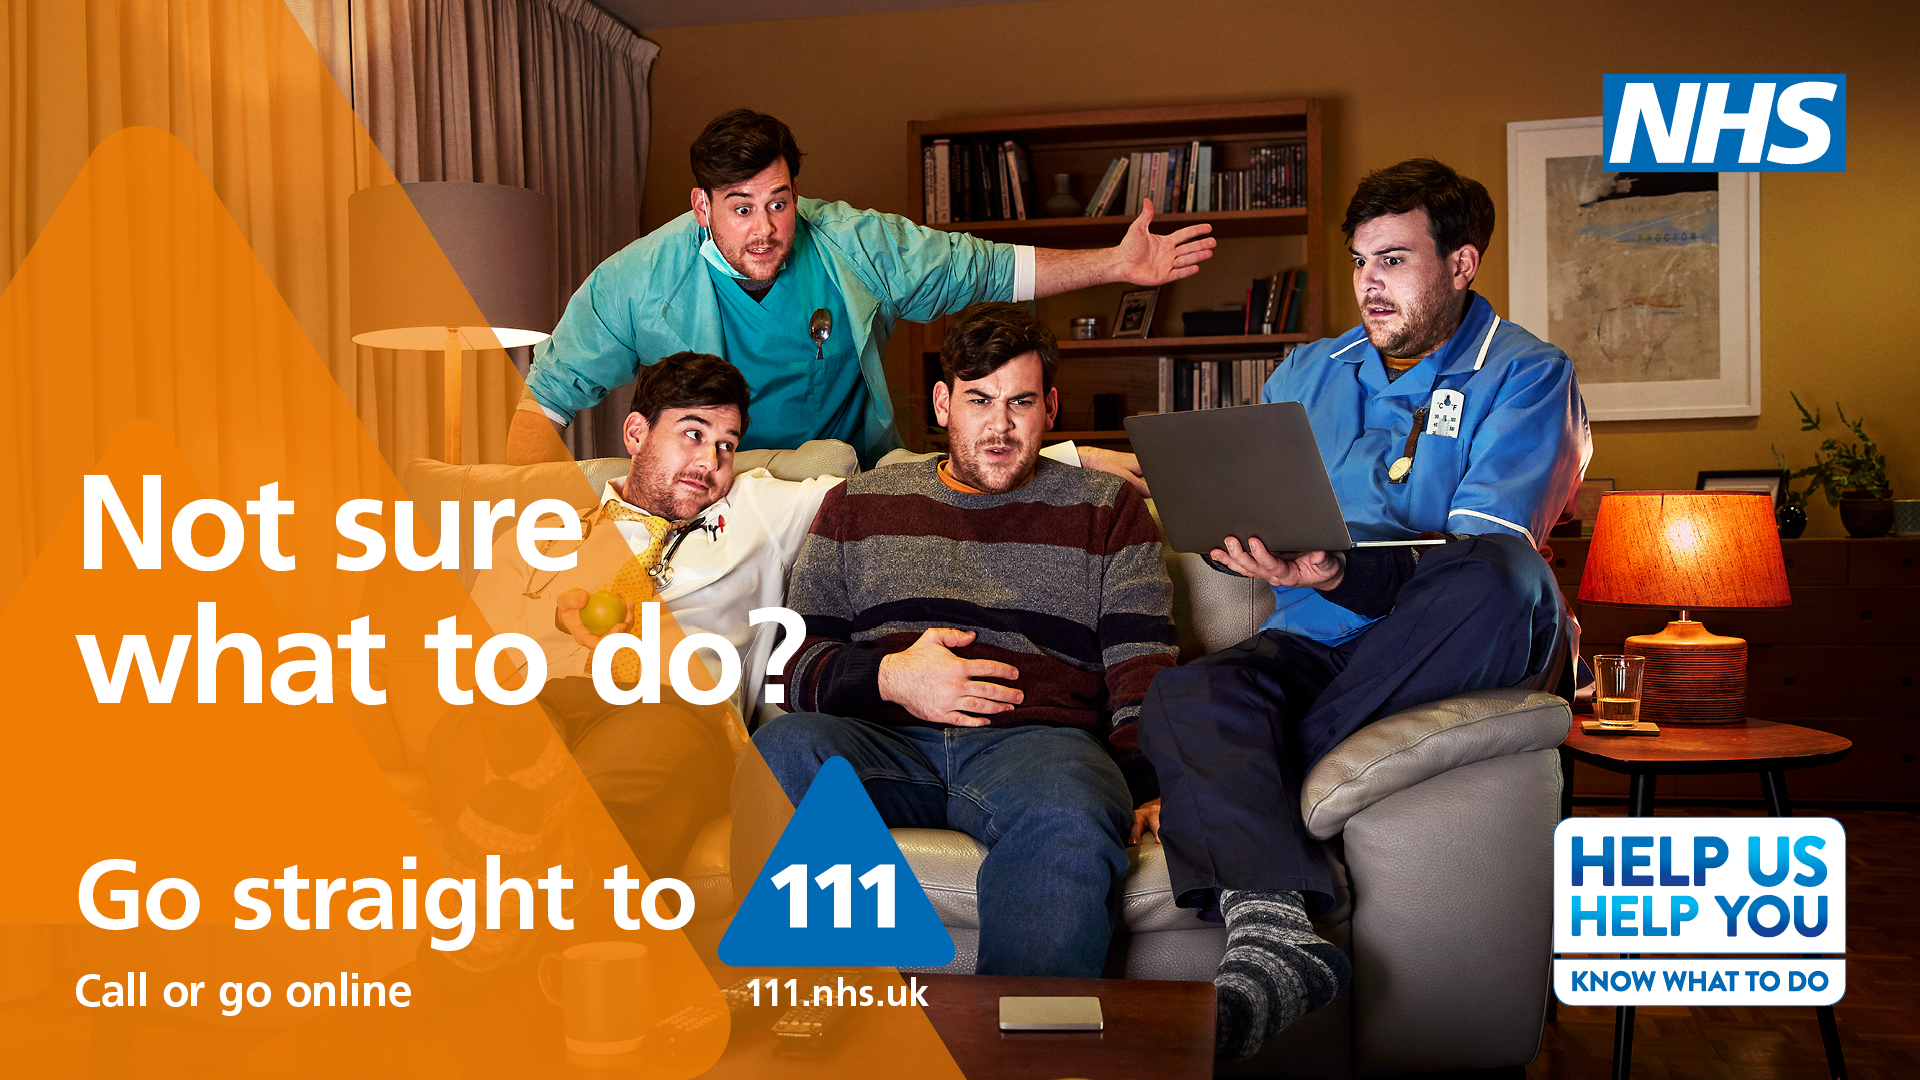 nhs-111-call-ro-go-online-1920x1080-1